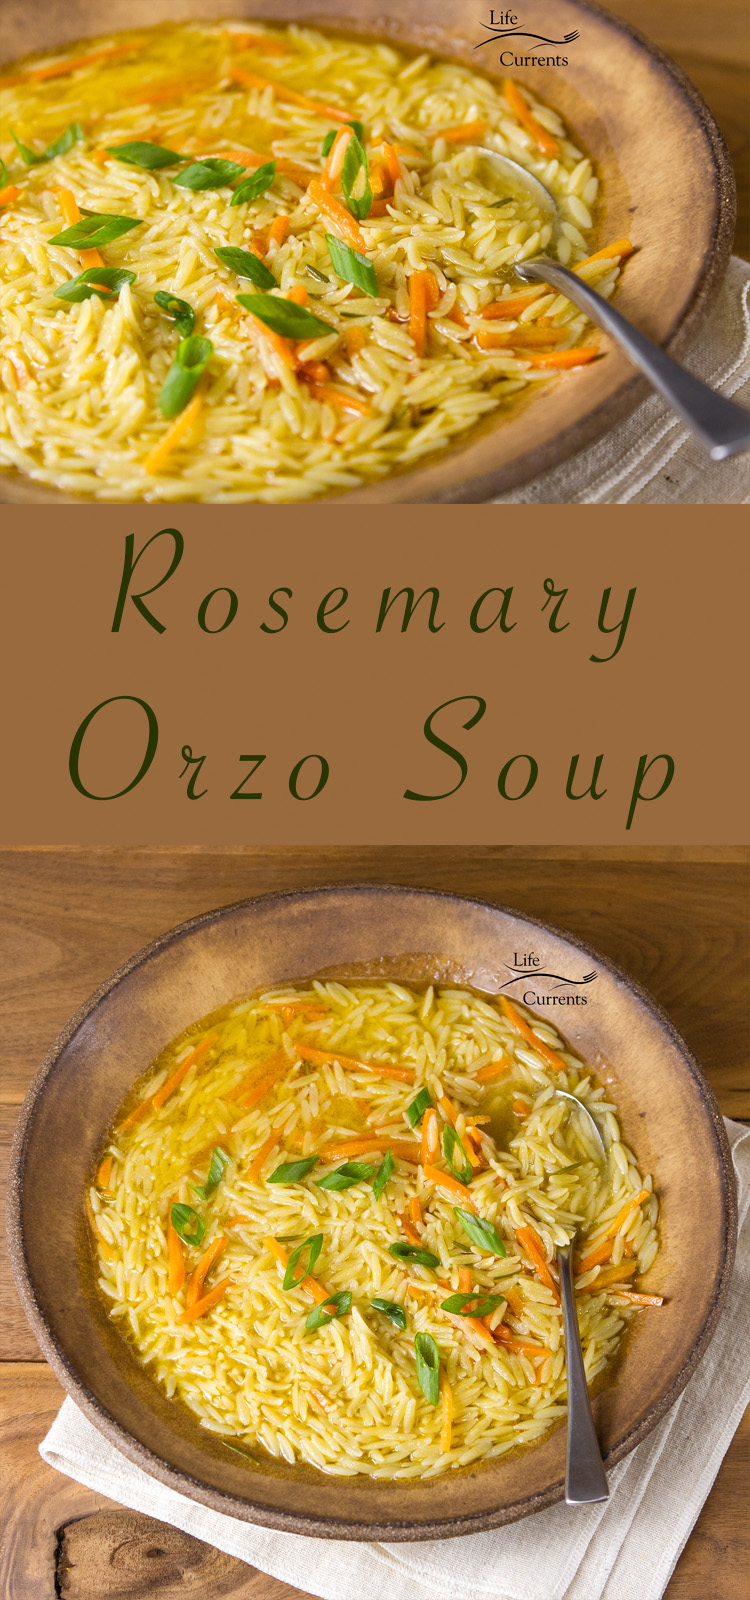 Rosemary Orzo Soup - Life Currents